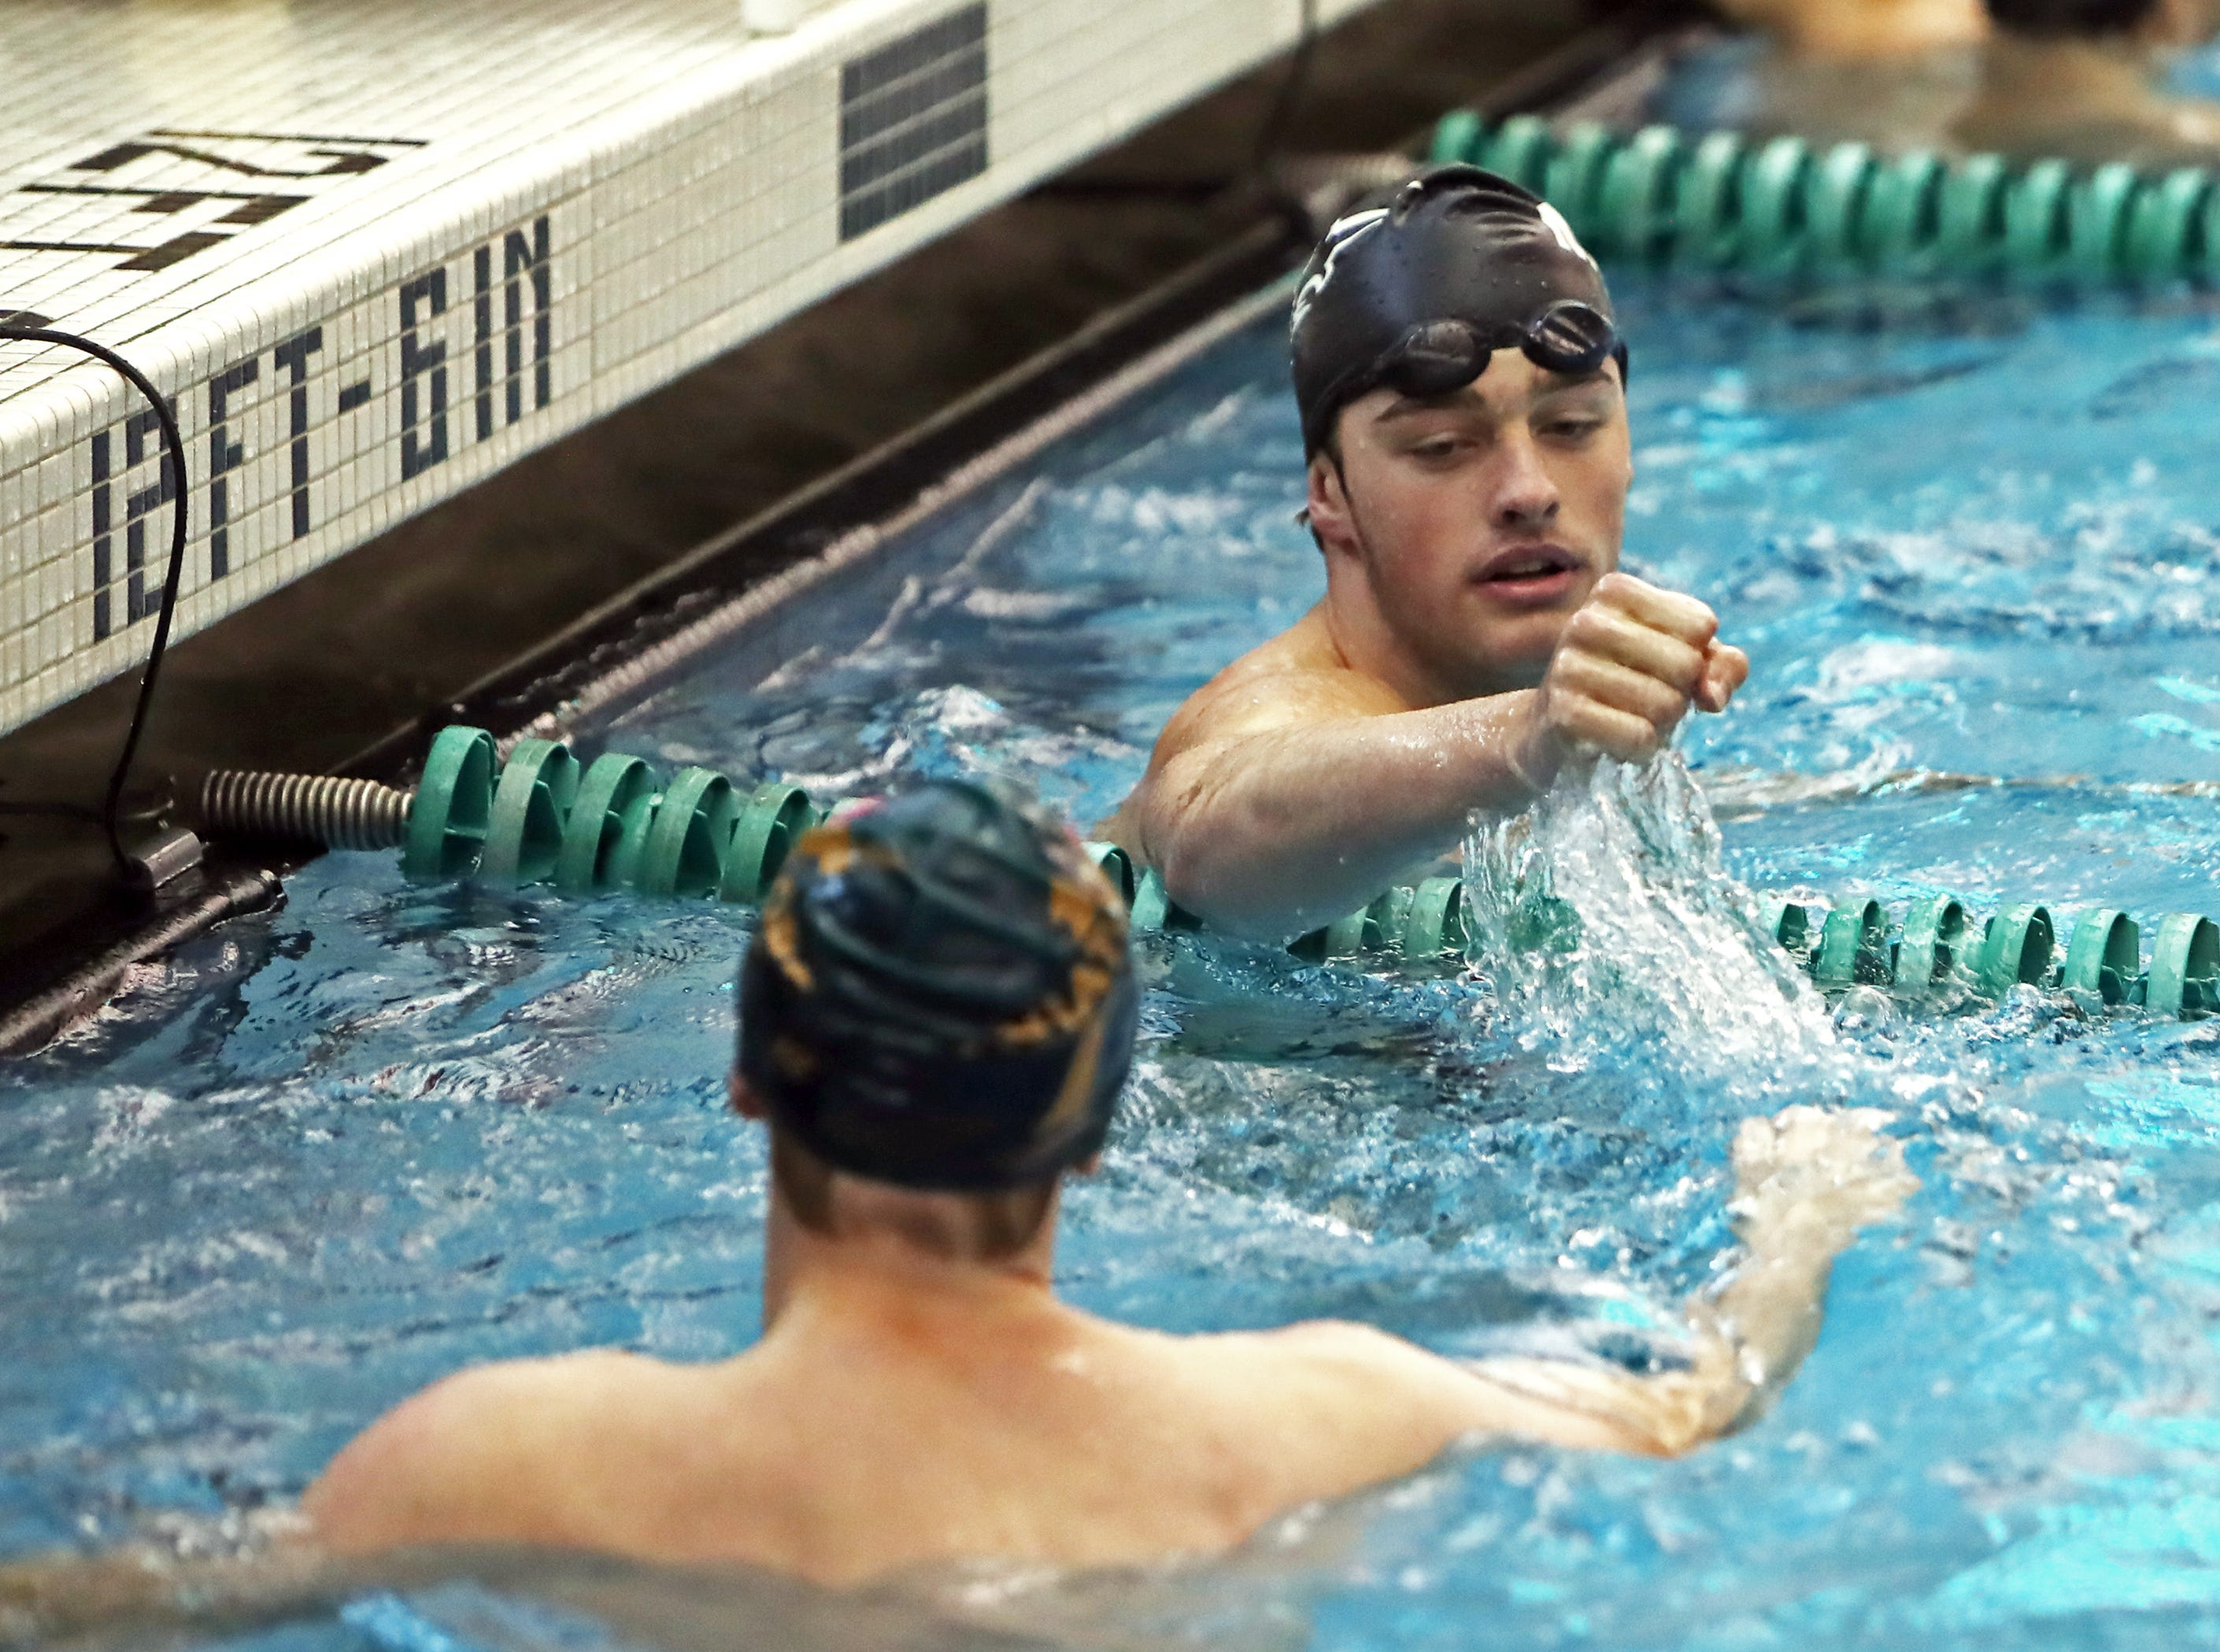 Adam Chaney from Mason [top] and Carl Elliot from Sycamore finish 1-2 in their preliminary heat of the boys 50-yard free style at the SW Ohio Swim Classic at Mason.